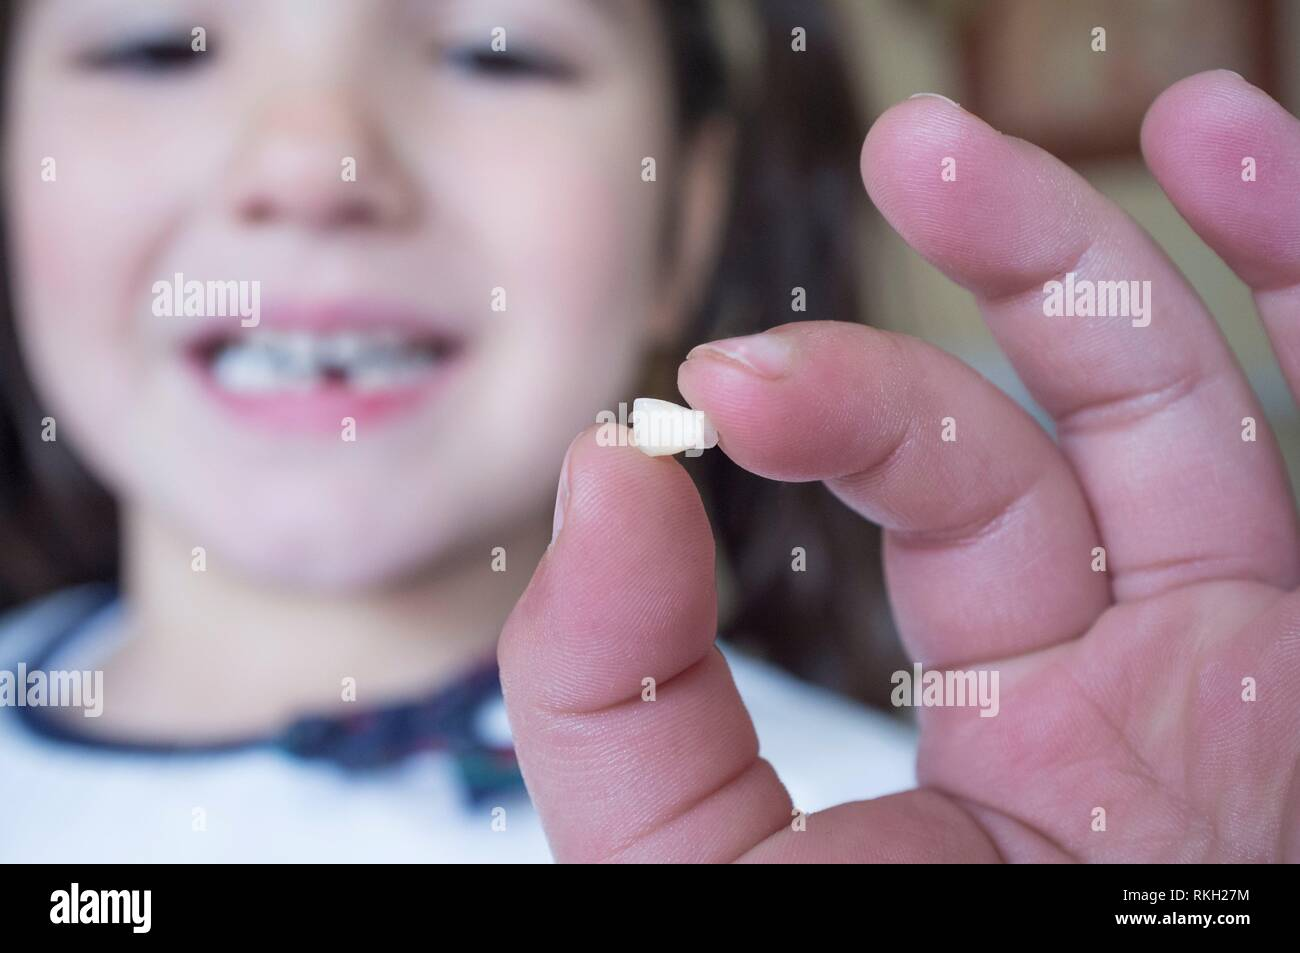 Little 5 years old girl showing her first baby tooth fallen out. Closeup. Stock Photo